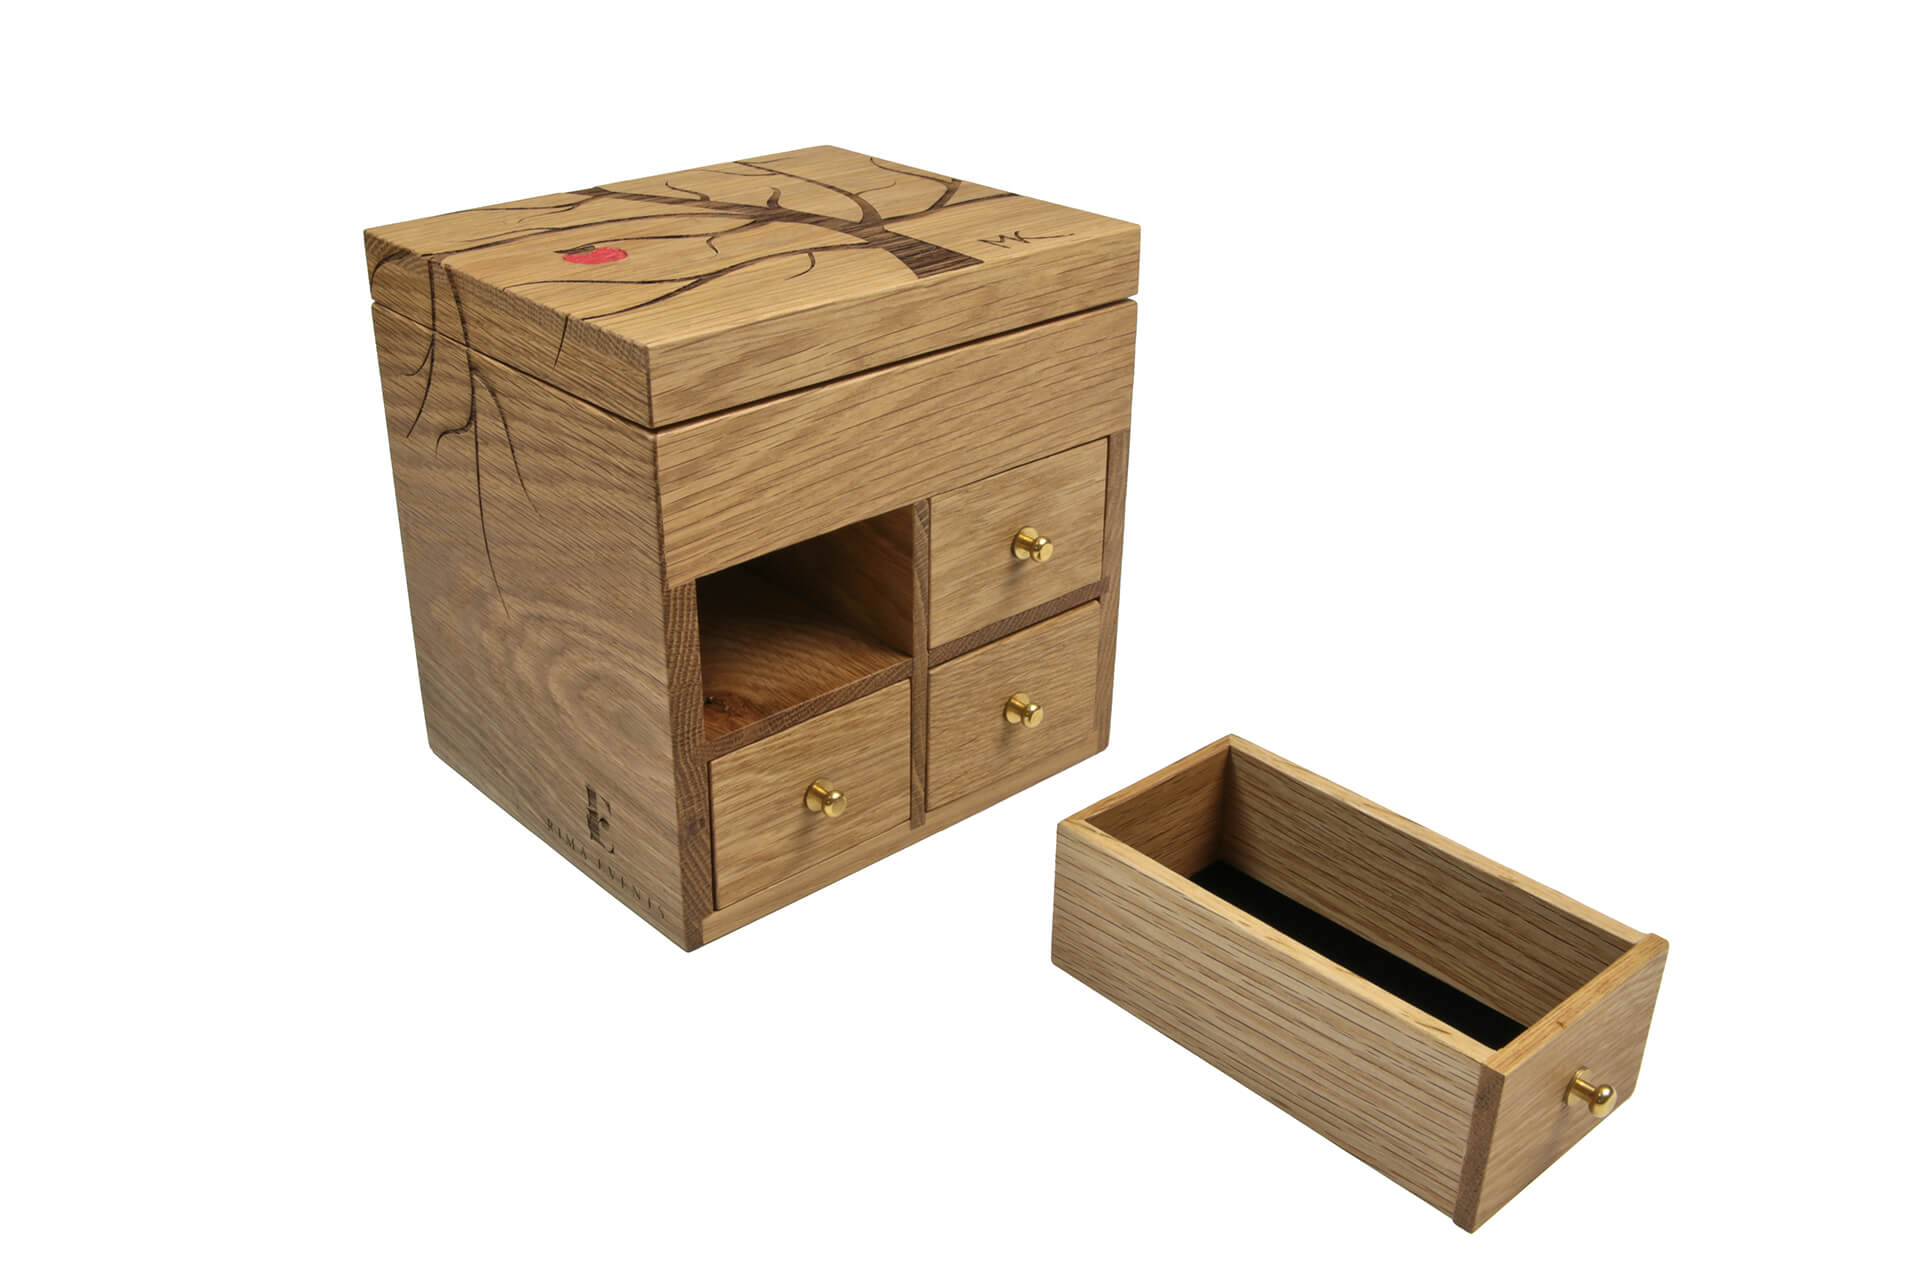 bespoke jewellry box design beautiful natural wood